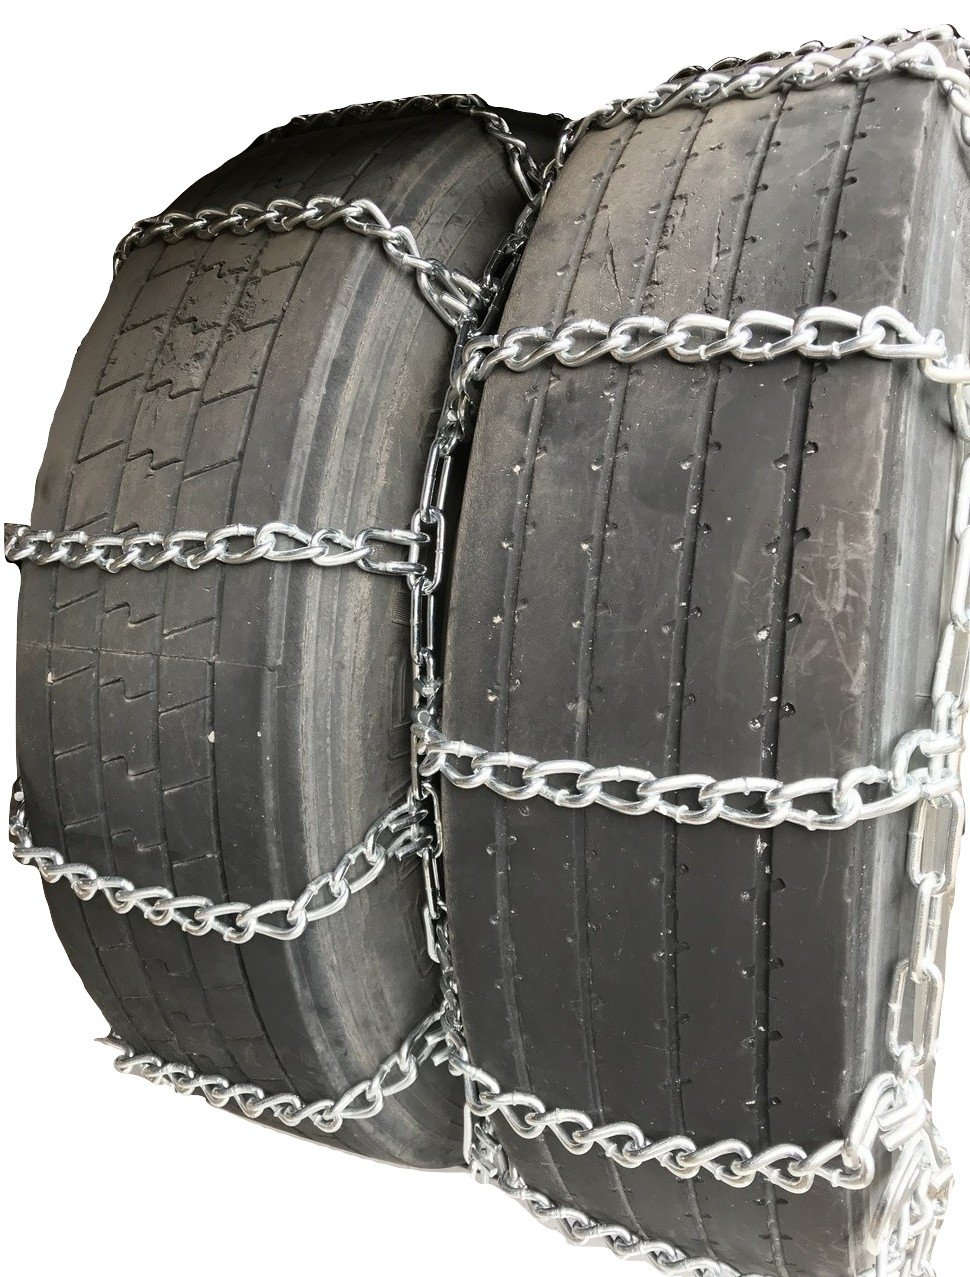 TireChain.com 4231 8.25-15TR, 255/85-16LT, 245/70-19.5 Dual Triple Truck Tire Chains with Cams, Priced per Pair